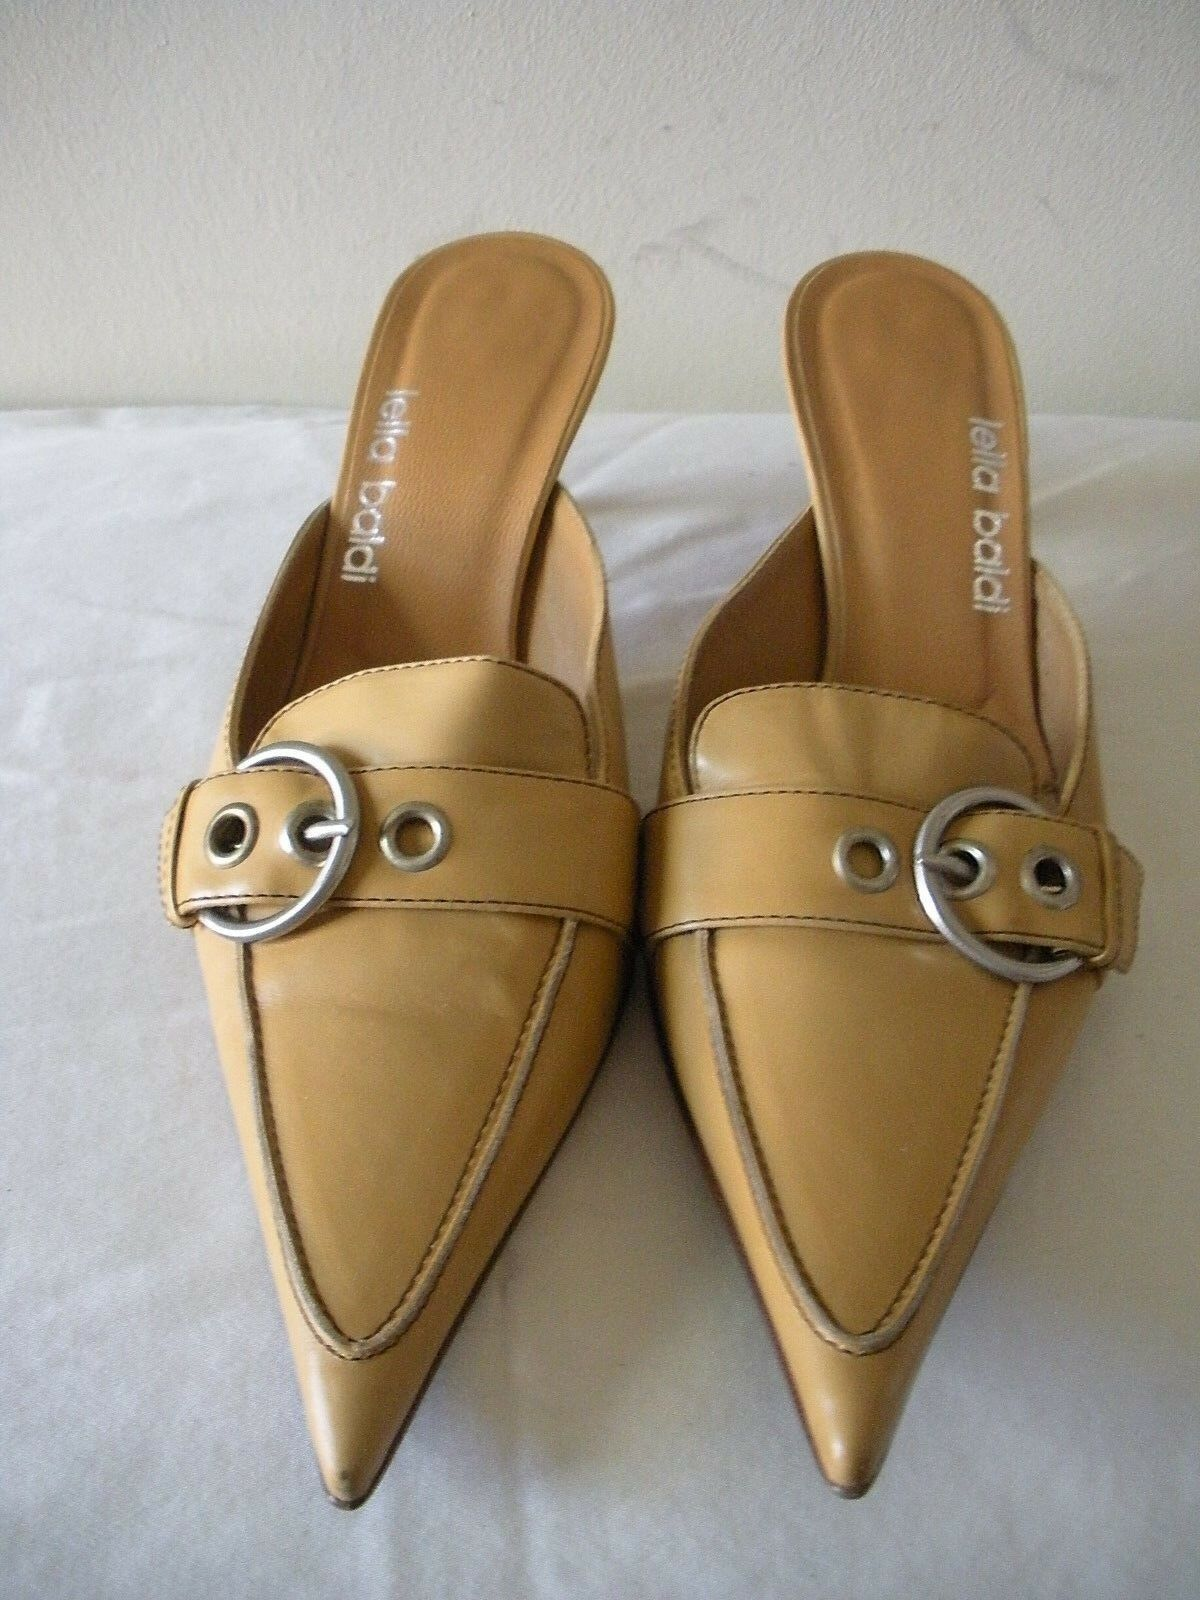 SEXY   235 LELLA BALDI Tan Leather Buckle Mules Slides Kitten shoes ITALY 37 7M